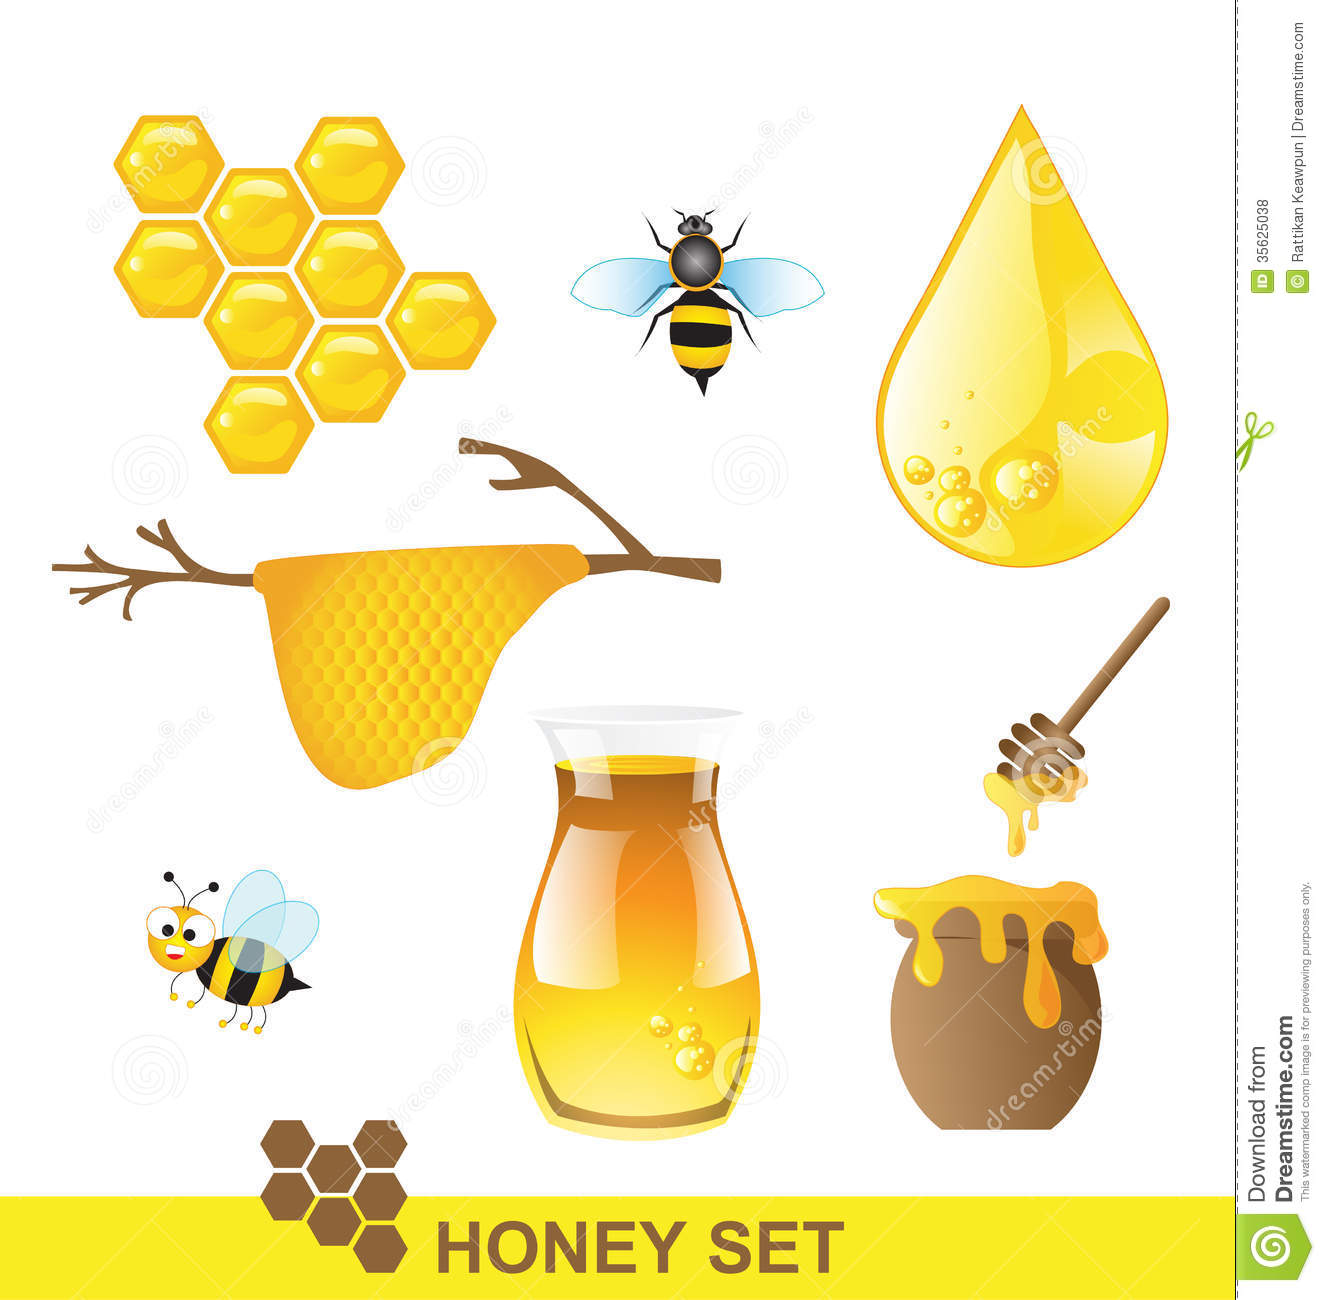 Honey Set Vector Royalty Free Stock Photos - Image: 35625038